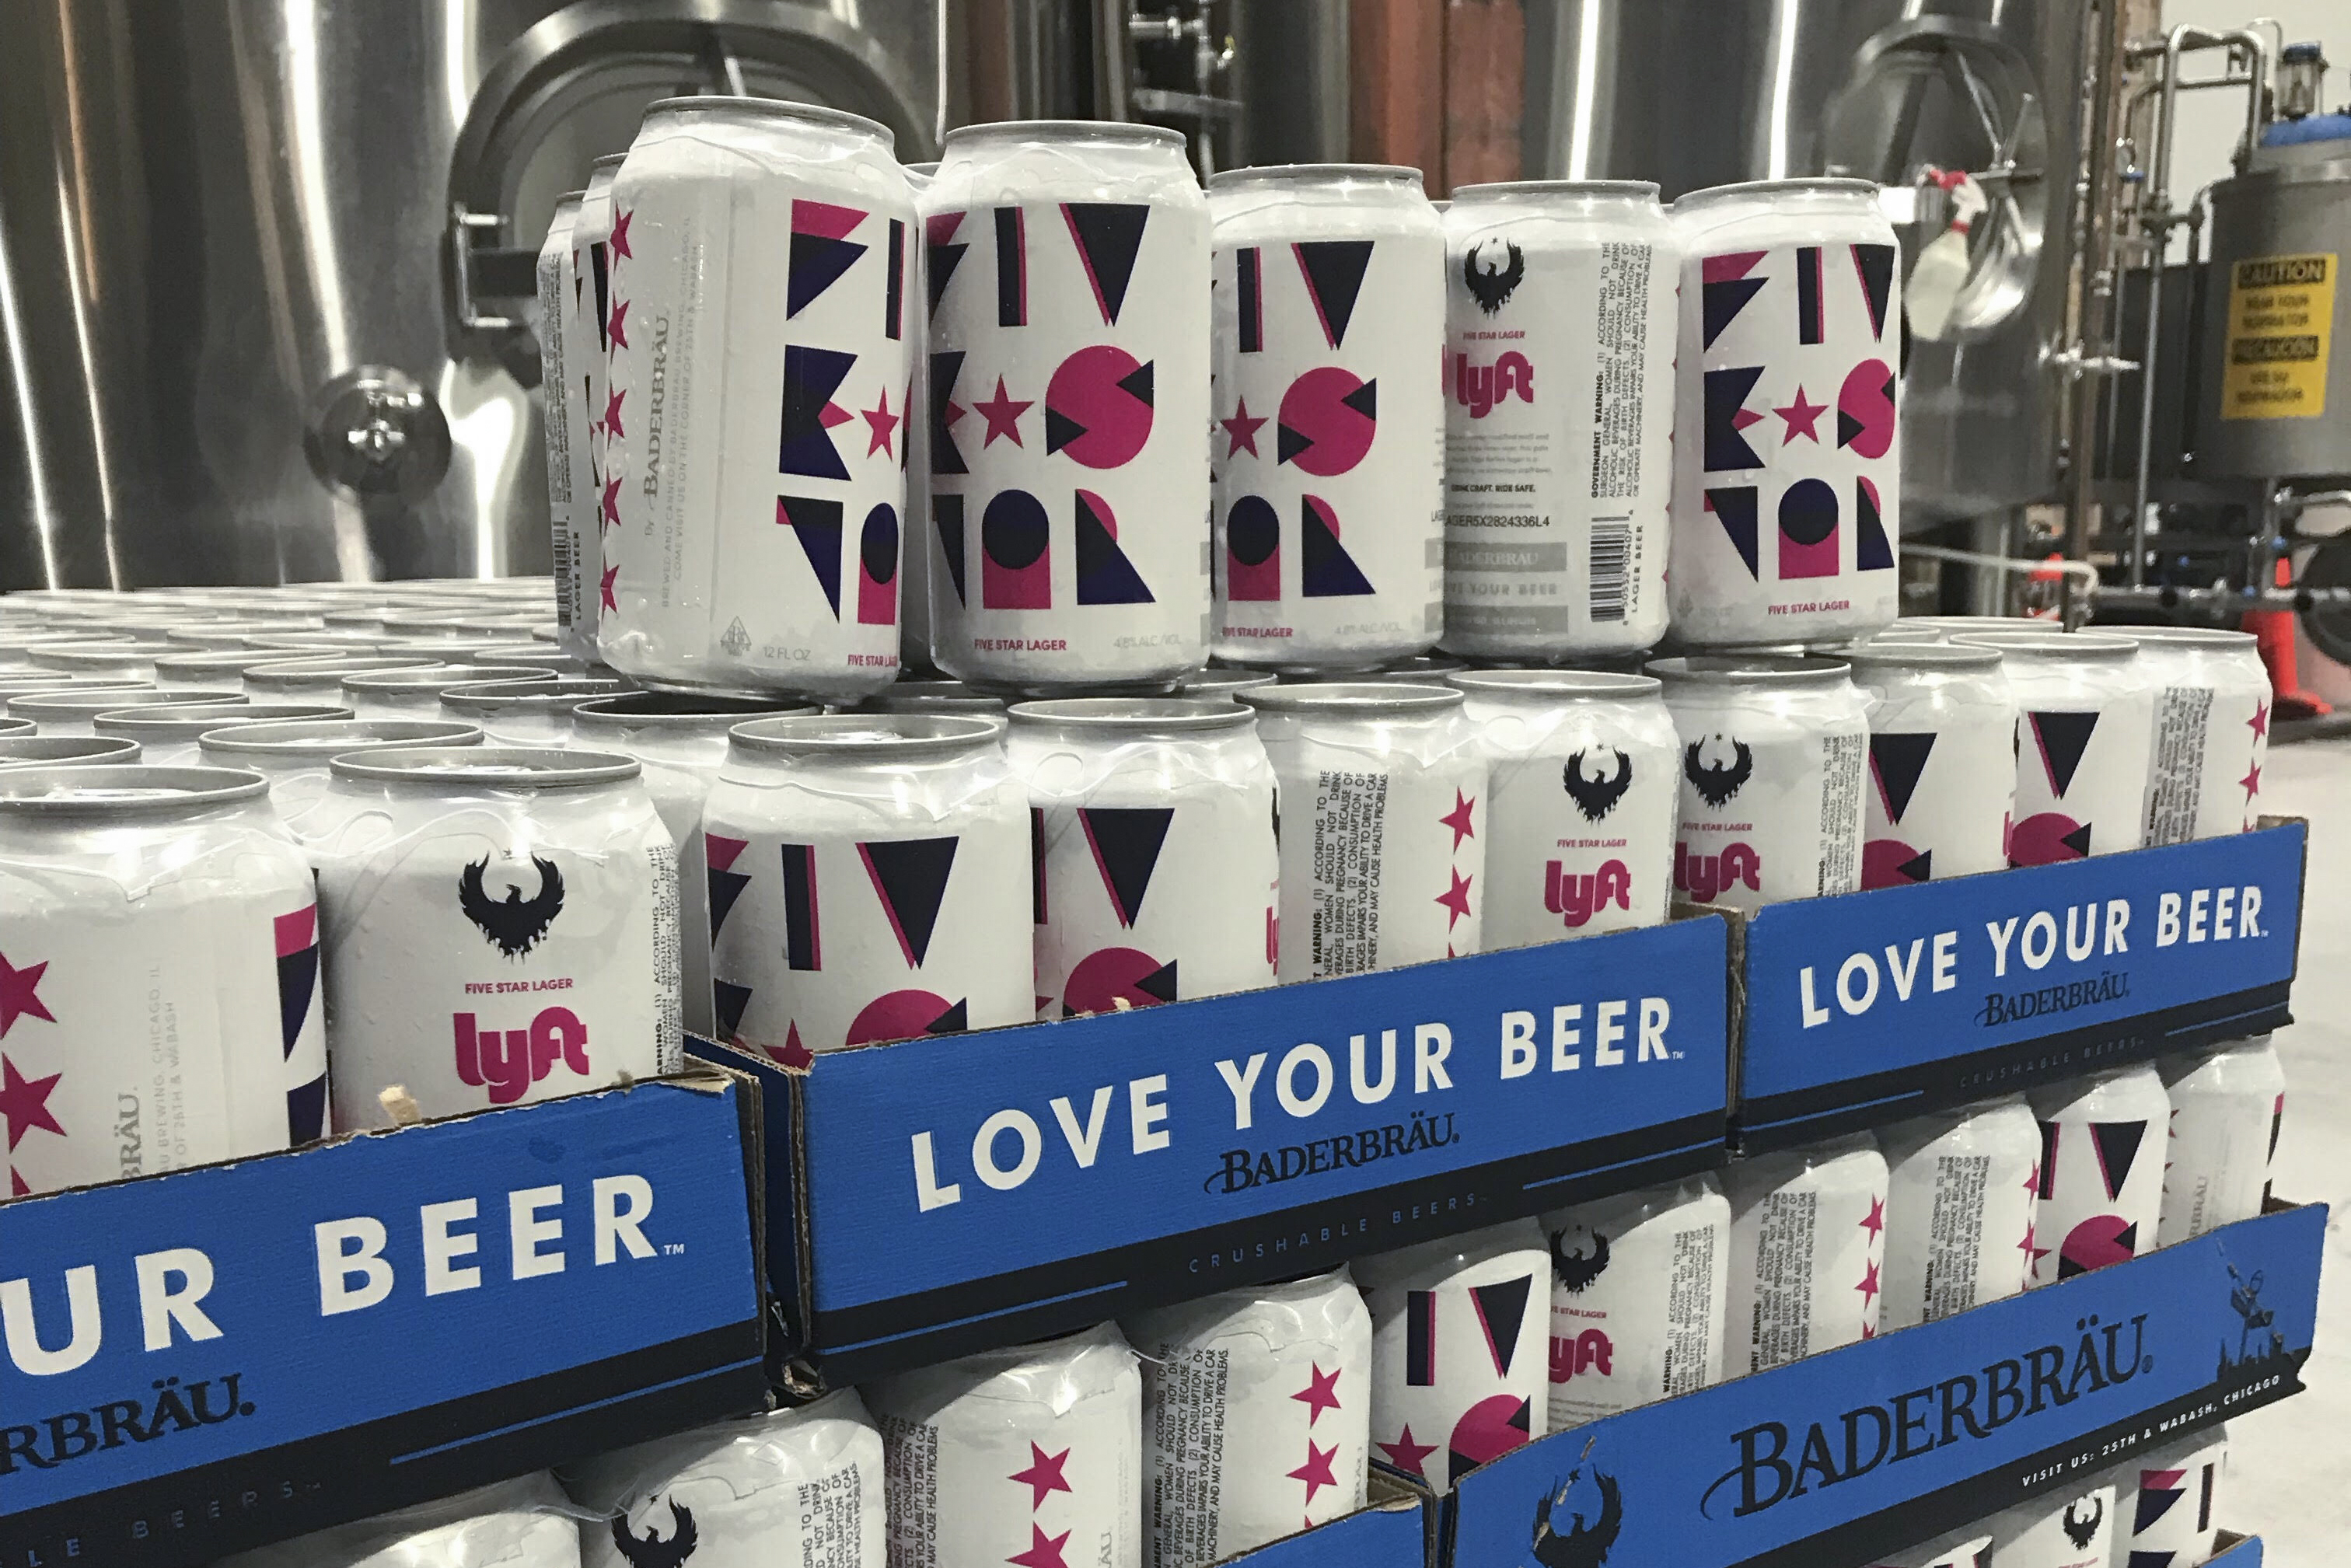 Lyft-branded Beer Offers Ride Discounts at Chicago Bars